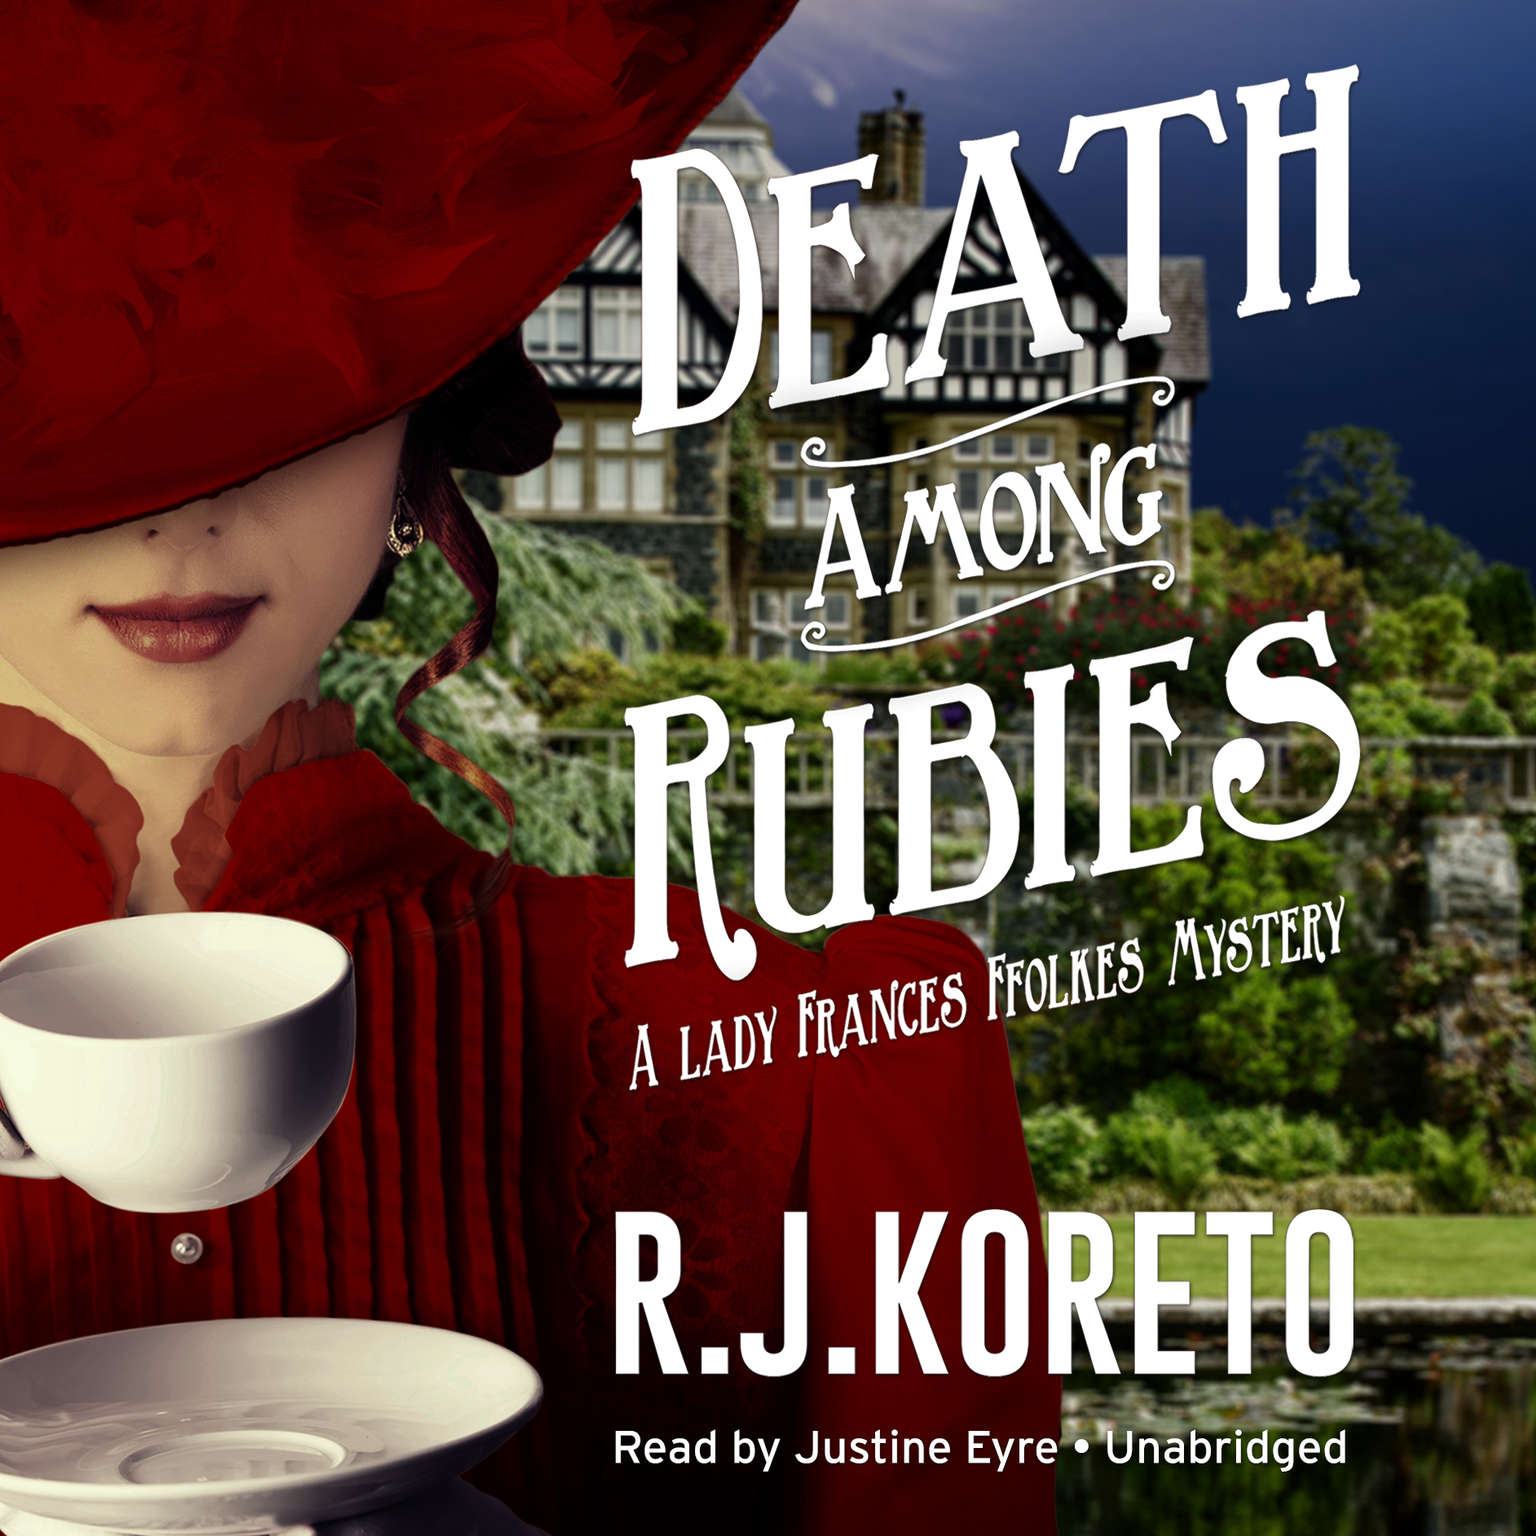 Printable Death among Rubies: A Lady Frances Ffolkes Mystery Audiobook Cover Art